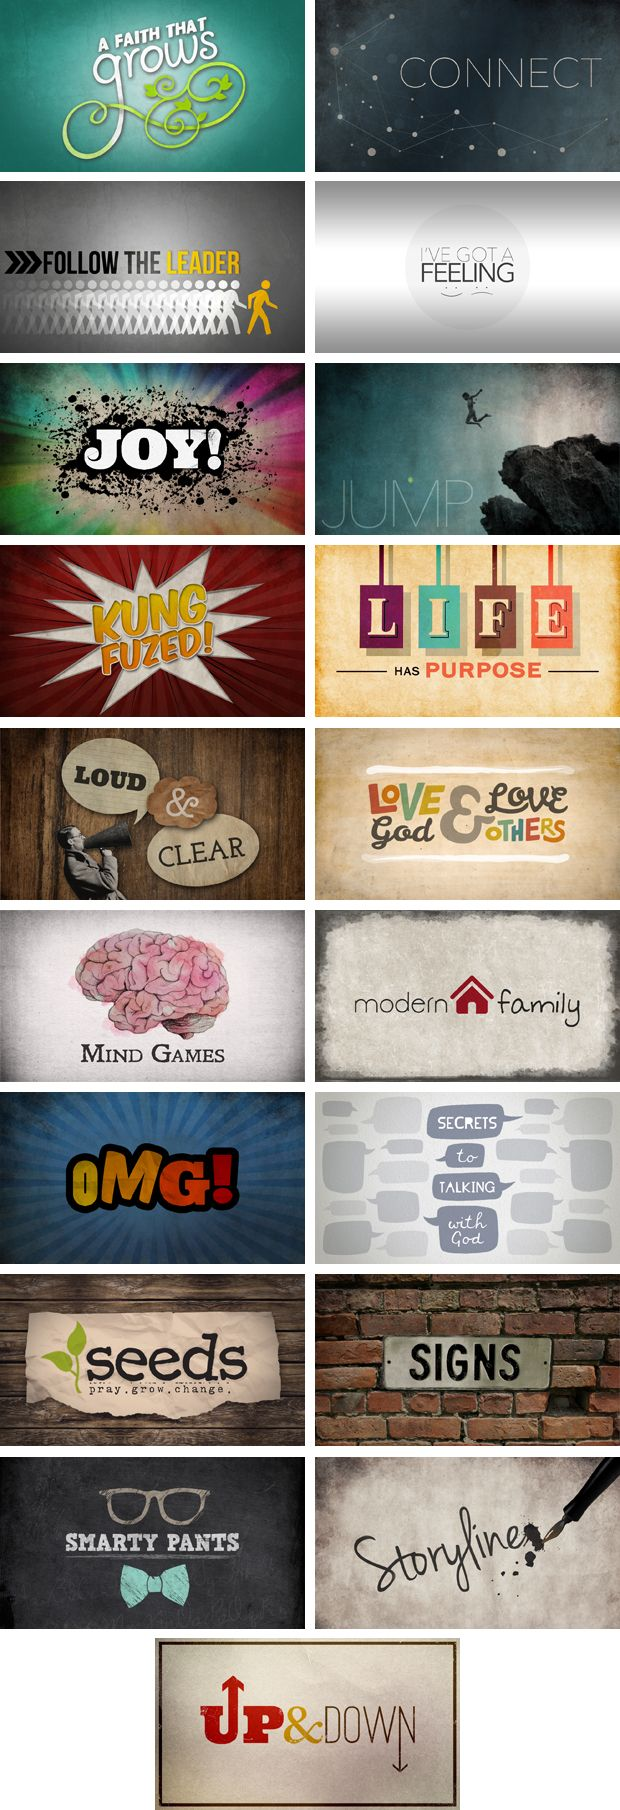 19 Editable Series Graphics Bundle - Stuff You Can Use | Youth Ministry Resources